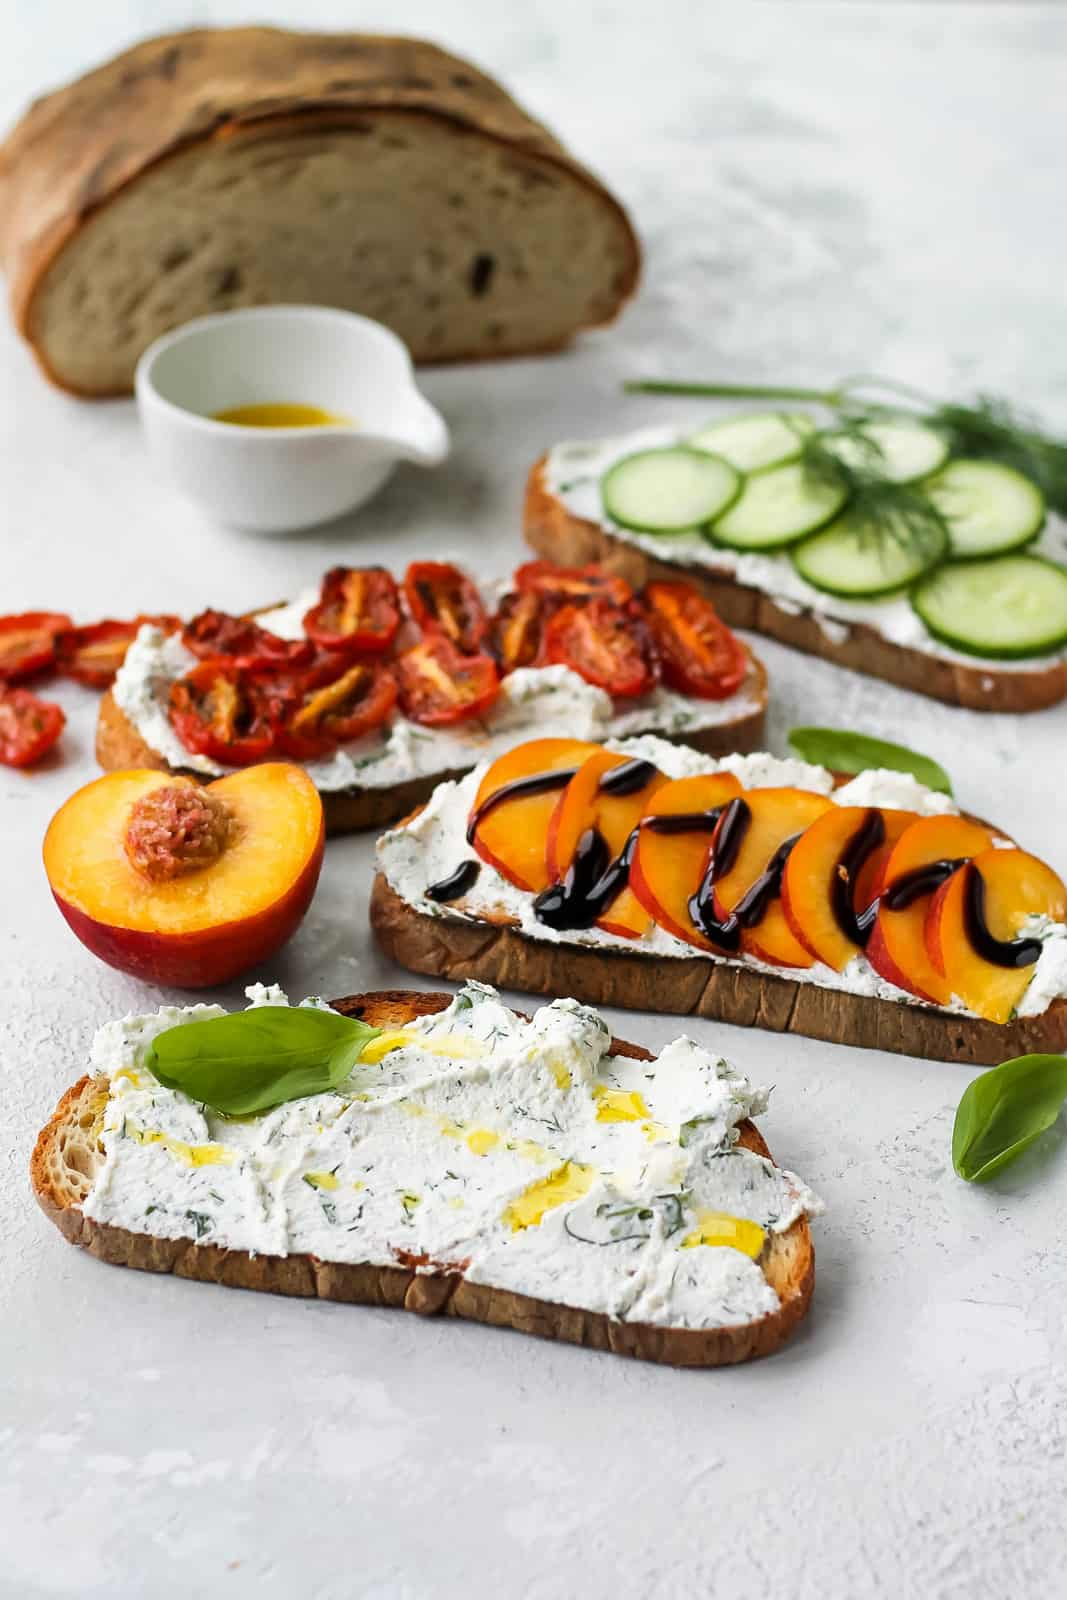 four slices of ricotta toast topped with fruits and vegetables with a loaf of sourdough bread in the background